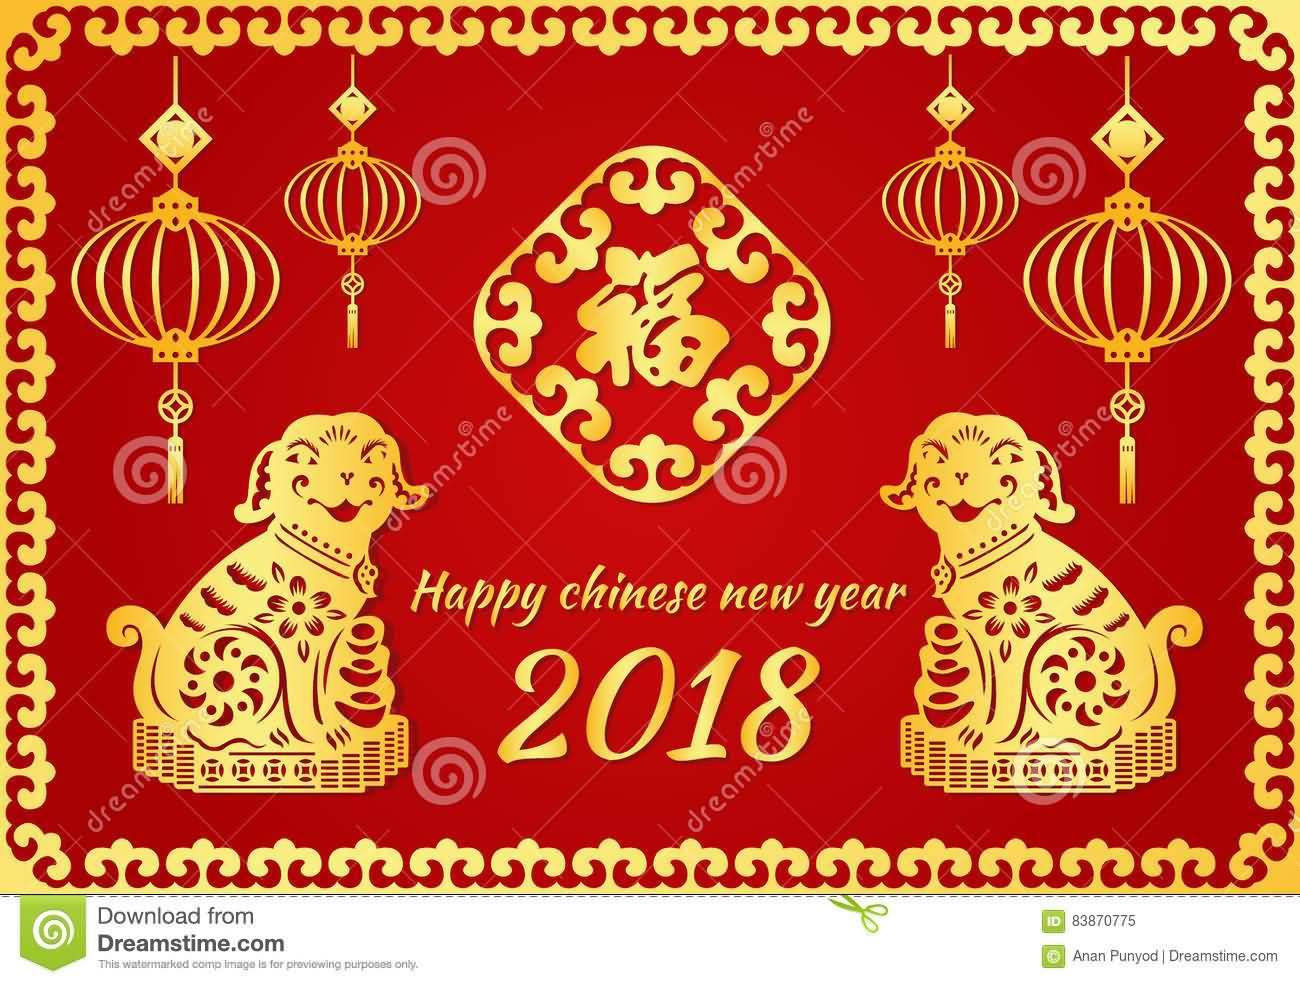 Happy Chinese New Year 2018 Cards Image Picture Photo Wallpaper 05